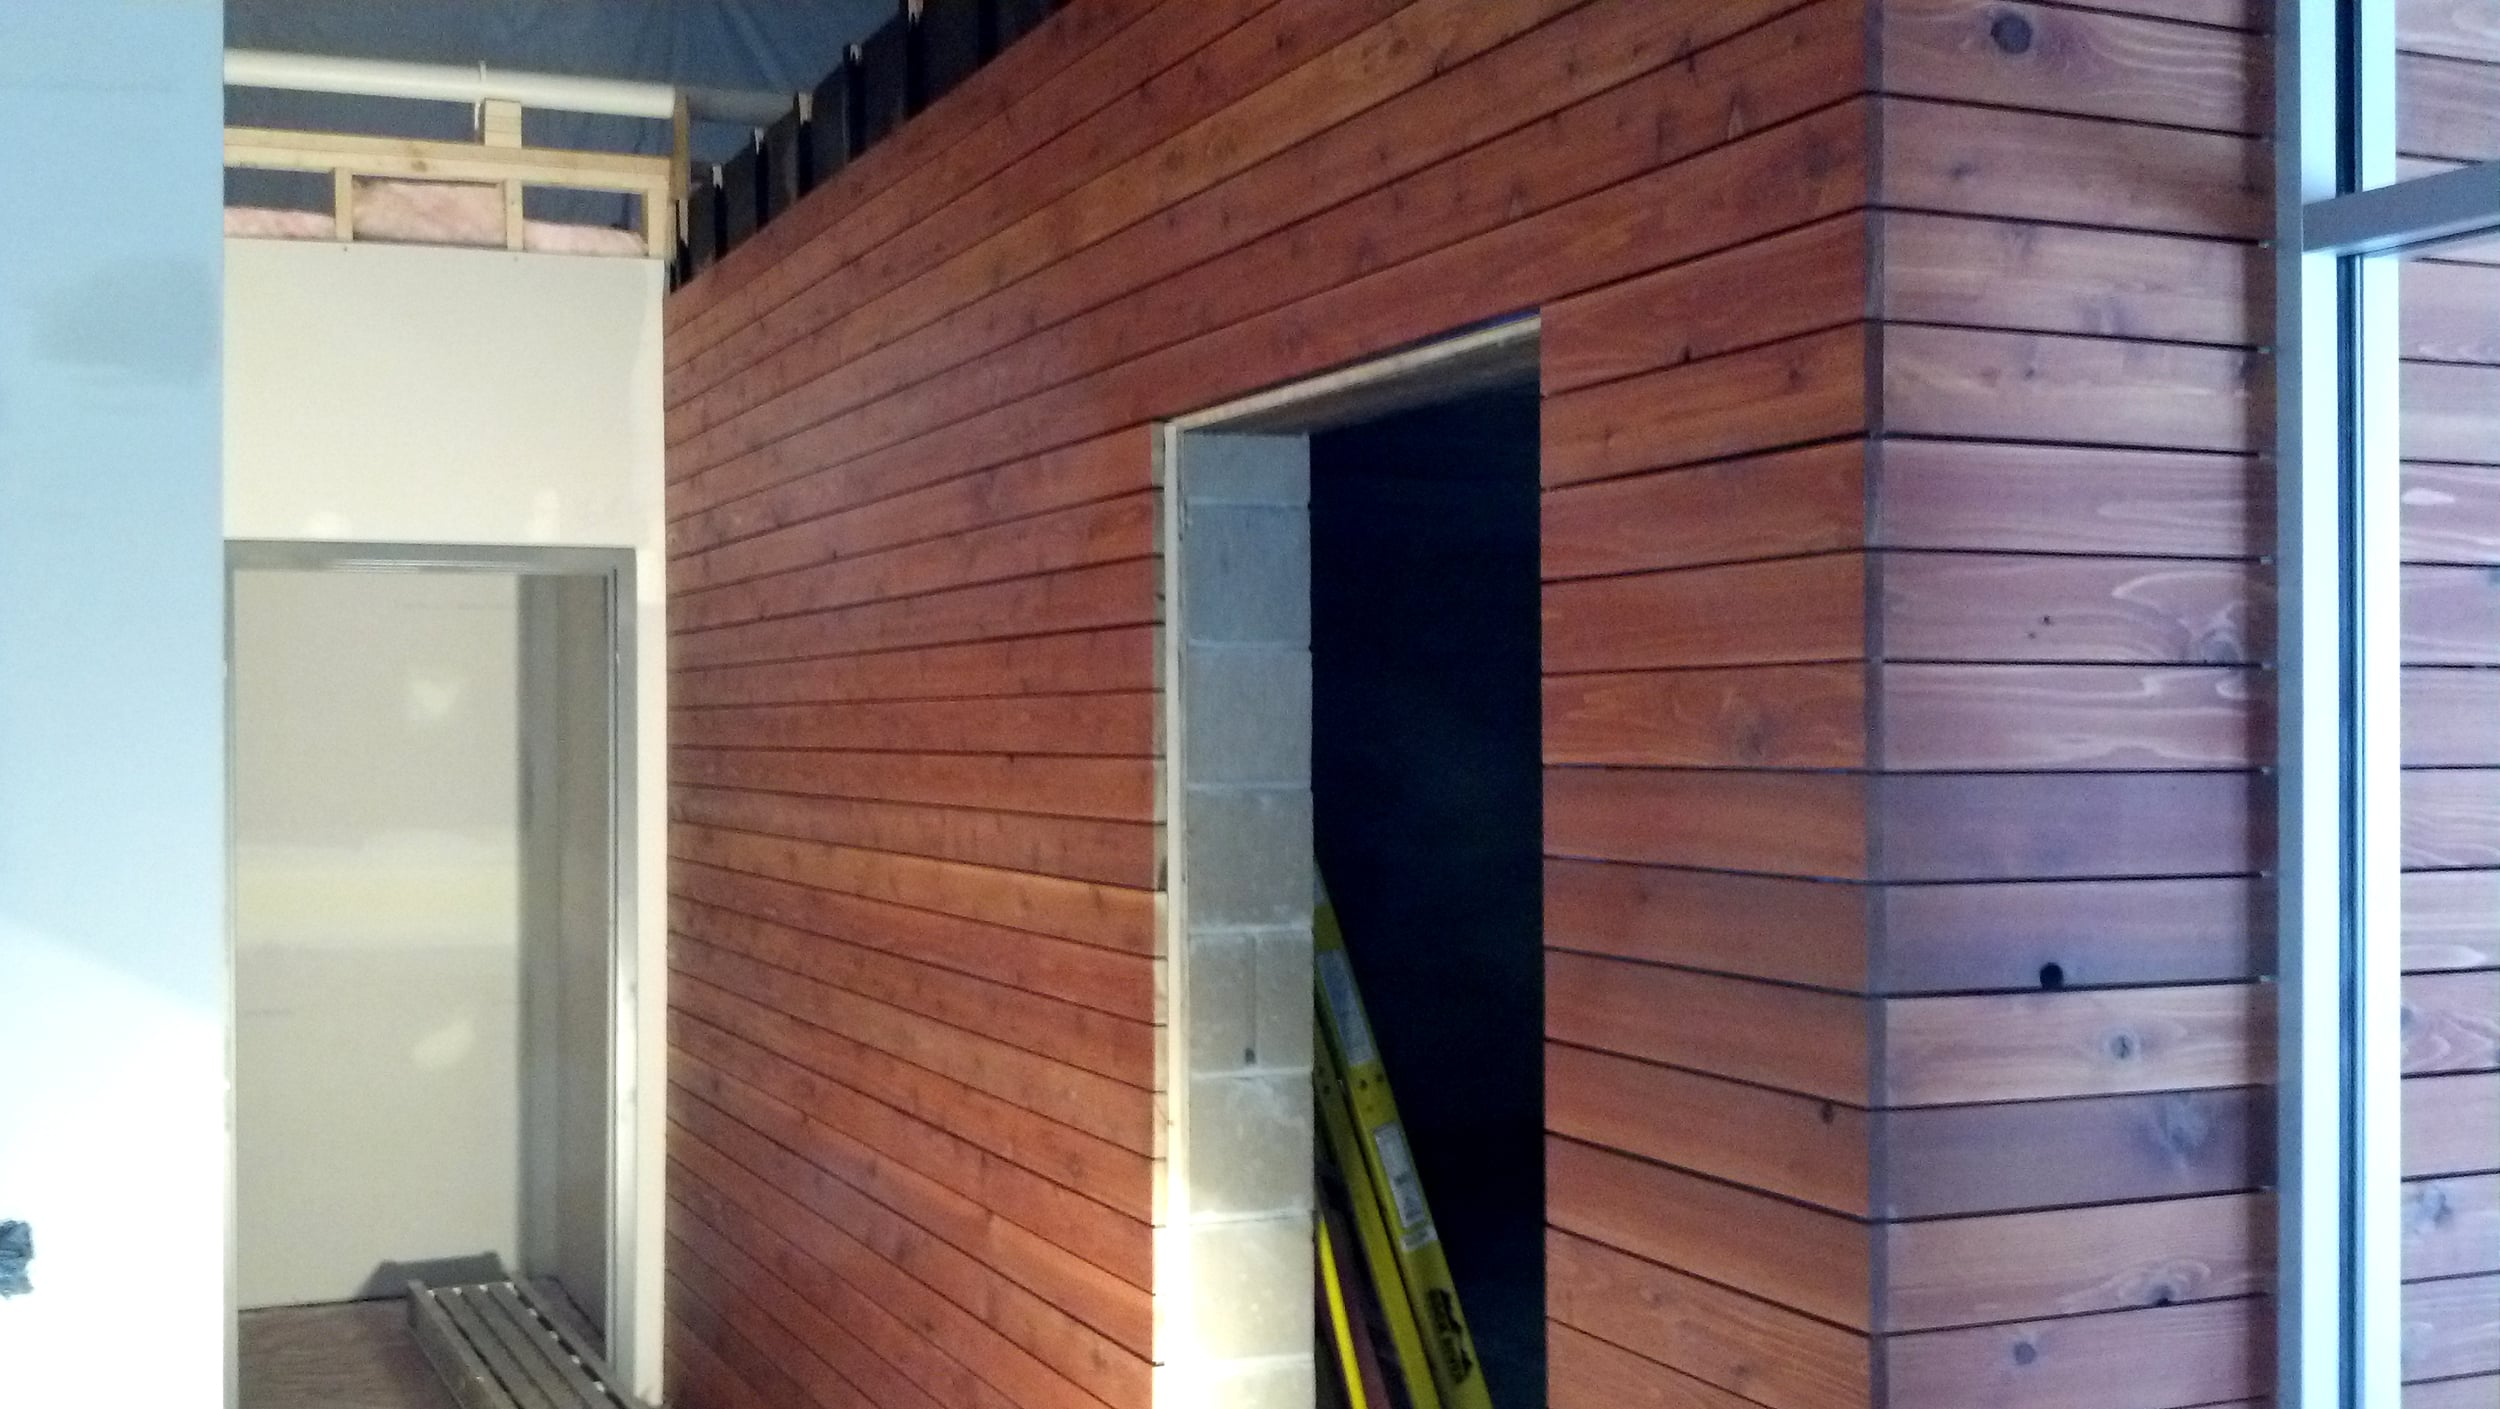 Construction Wednesday - Wood cladding detail